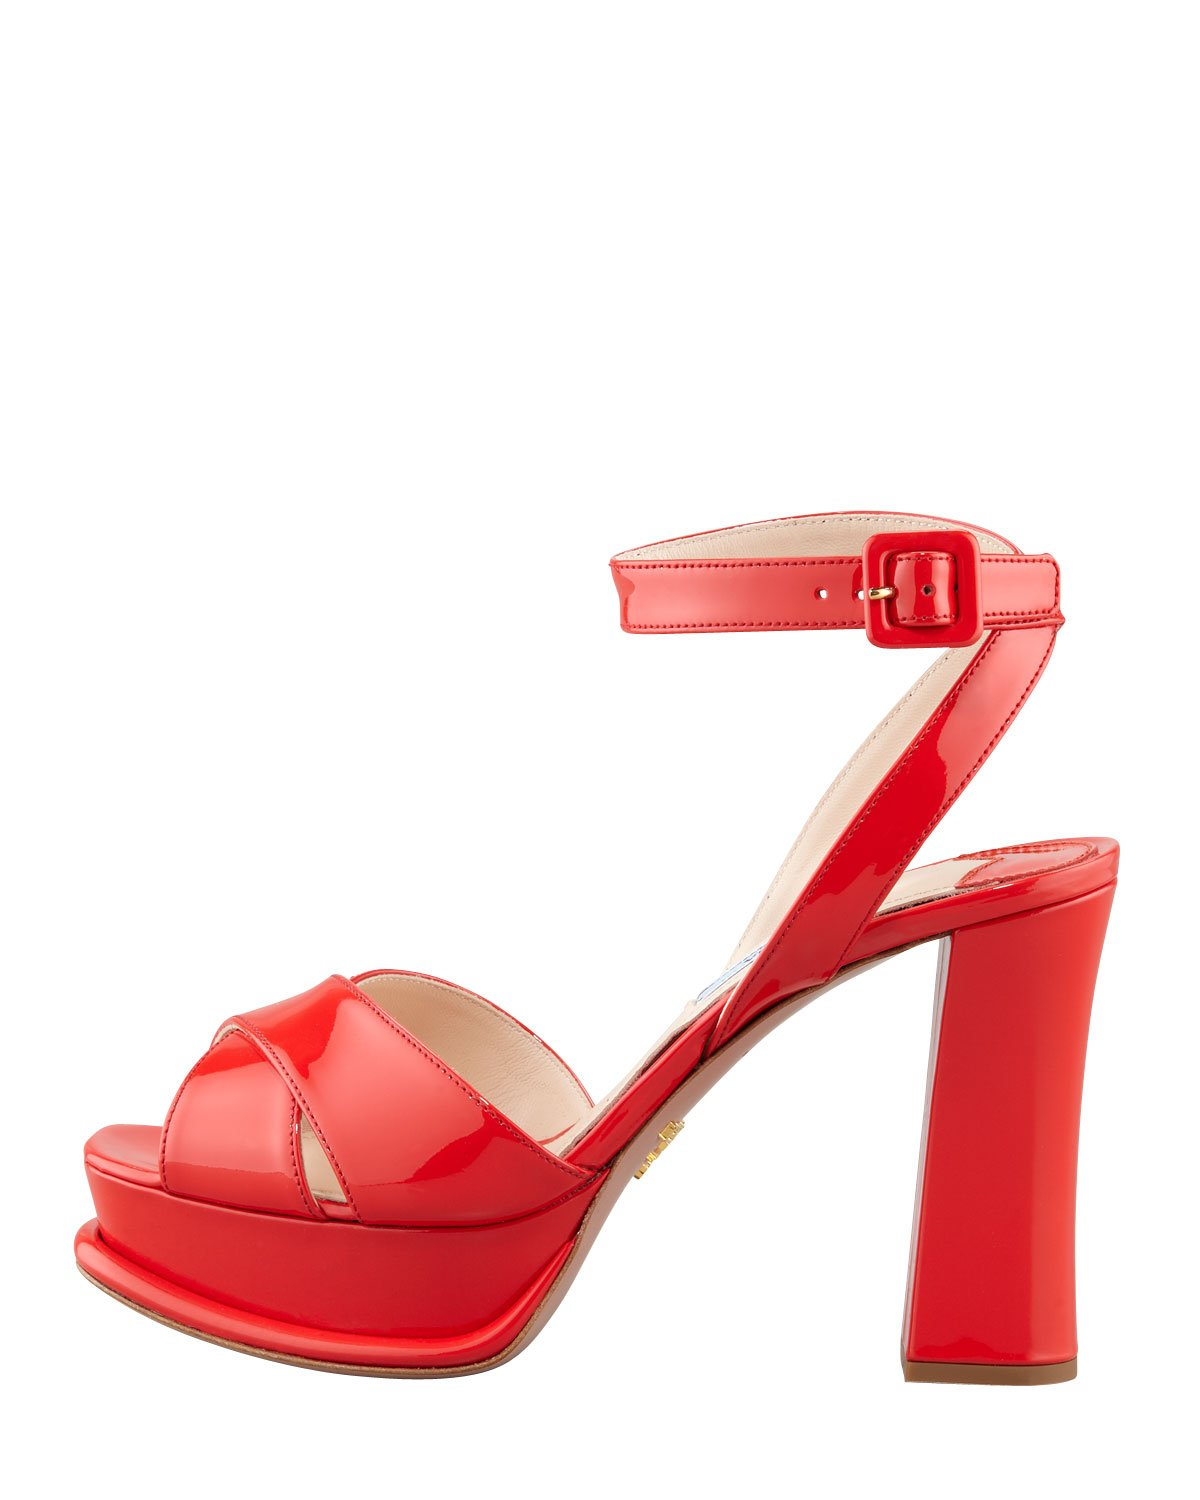 1cb2309e12f8 Lyst - Prada Patentleather Platform Sandal Heels in Red